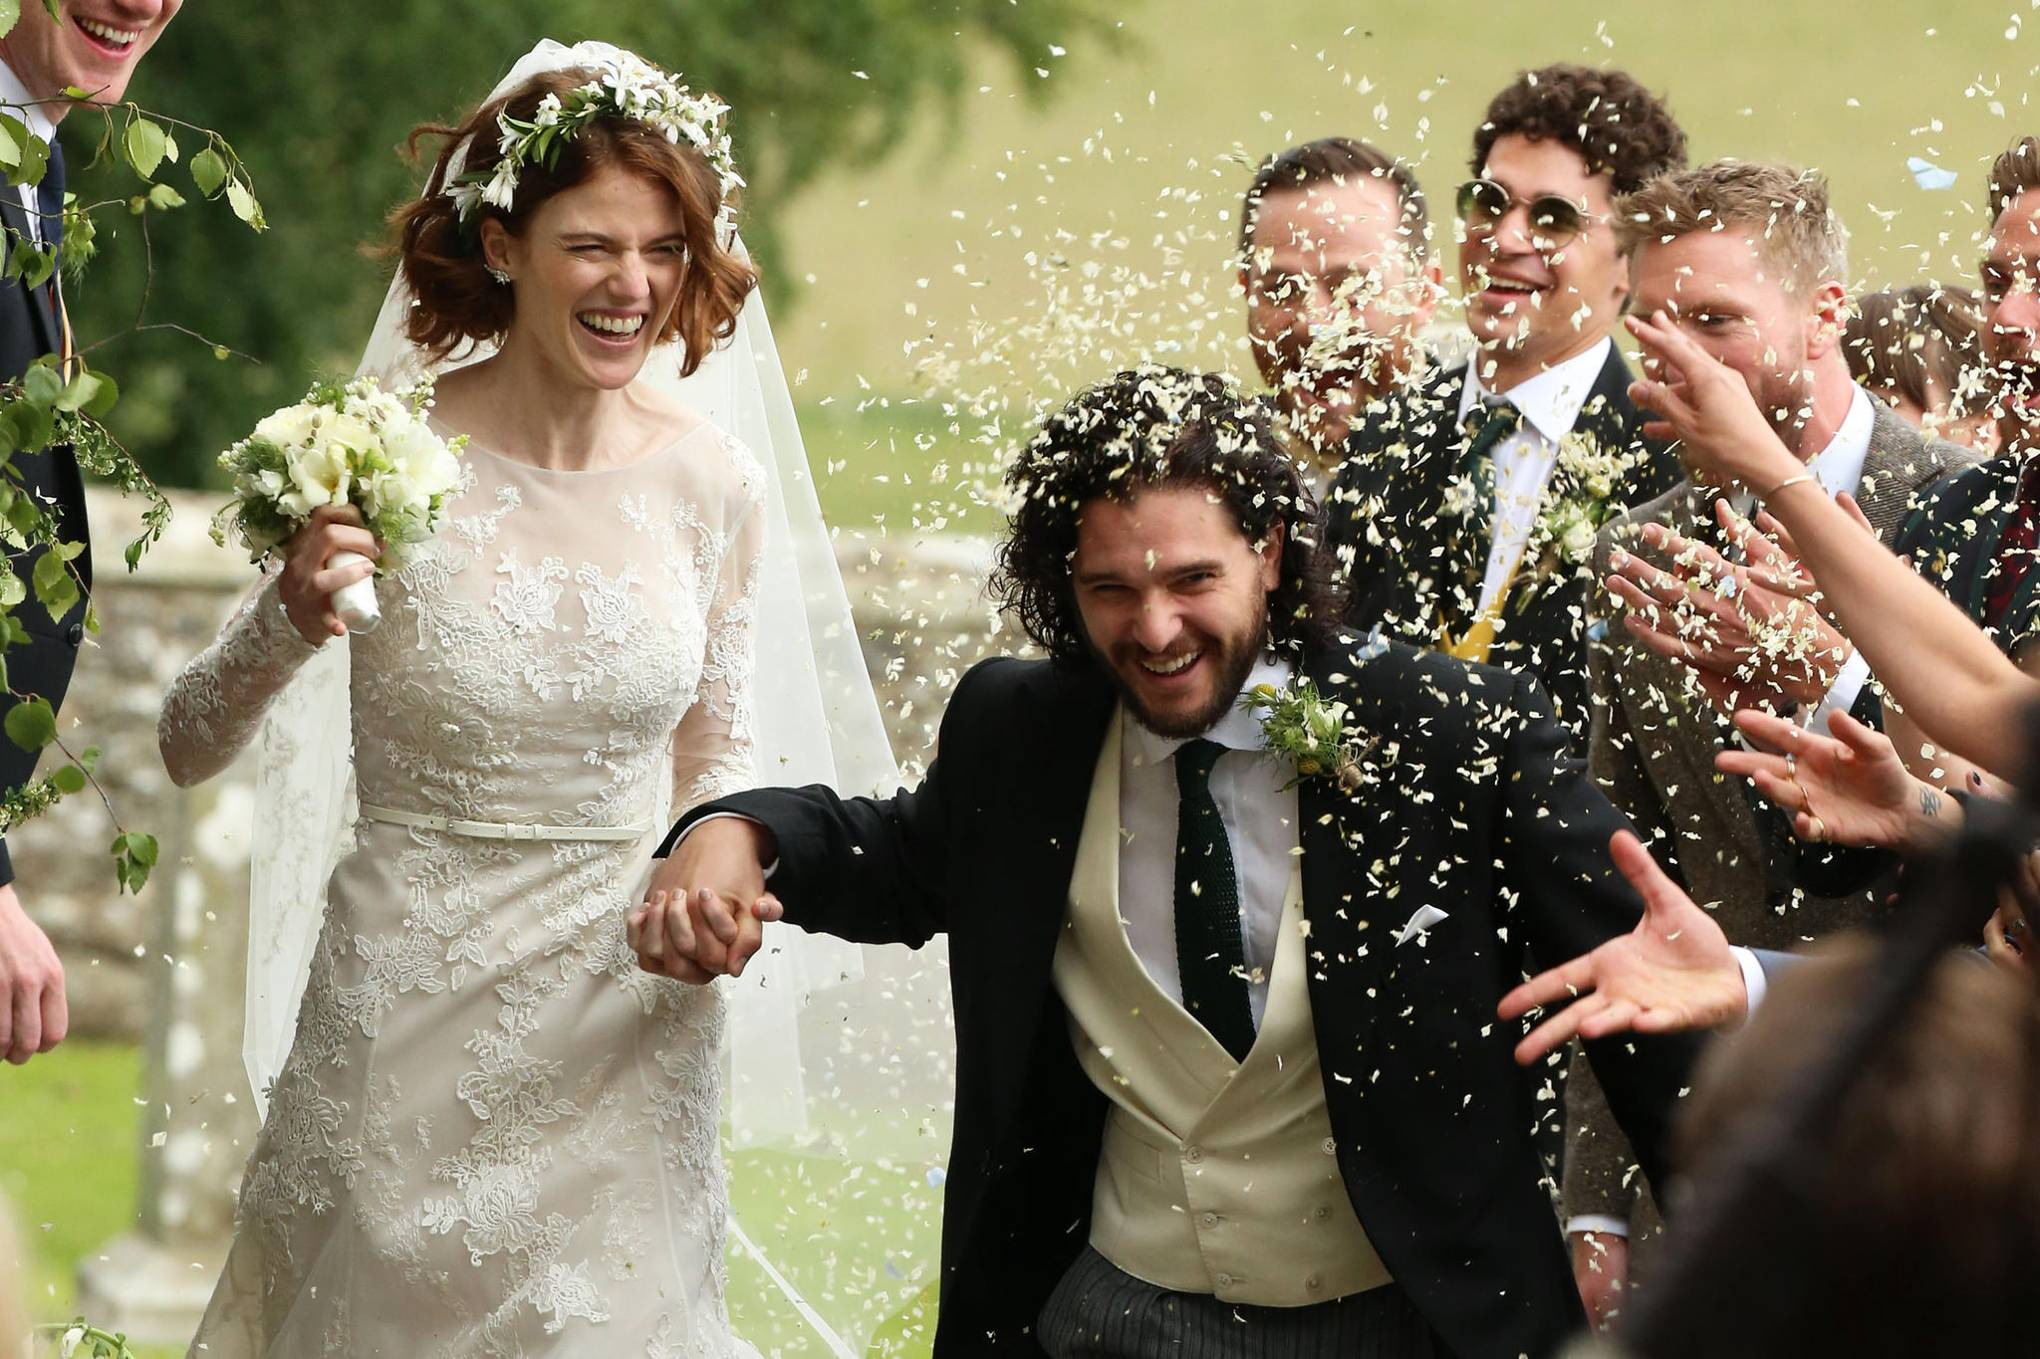 Ð?аÑ?Ñ?инки по запÑ?оÑ?Ñ? rose leslie wedding